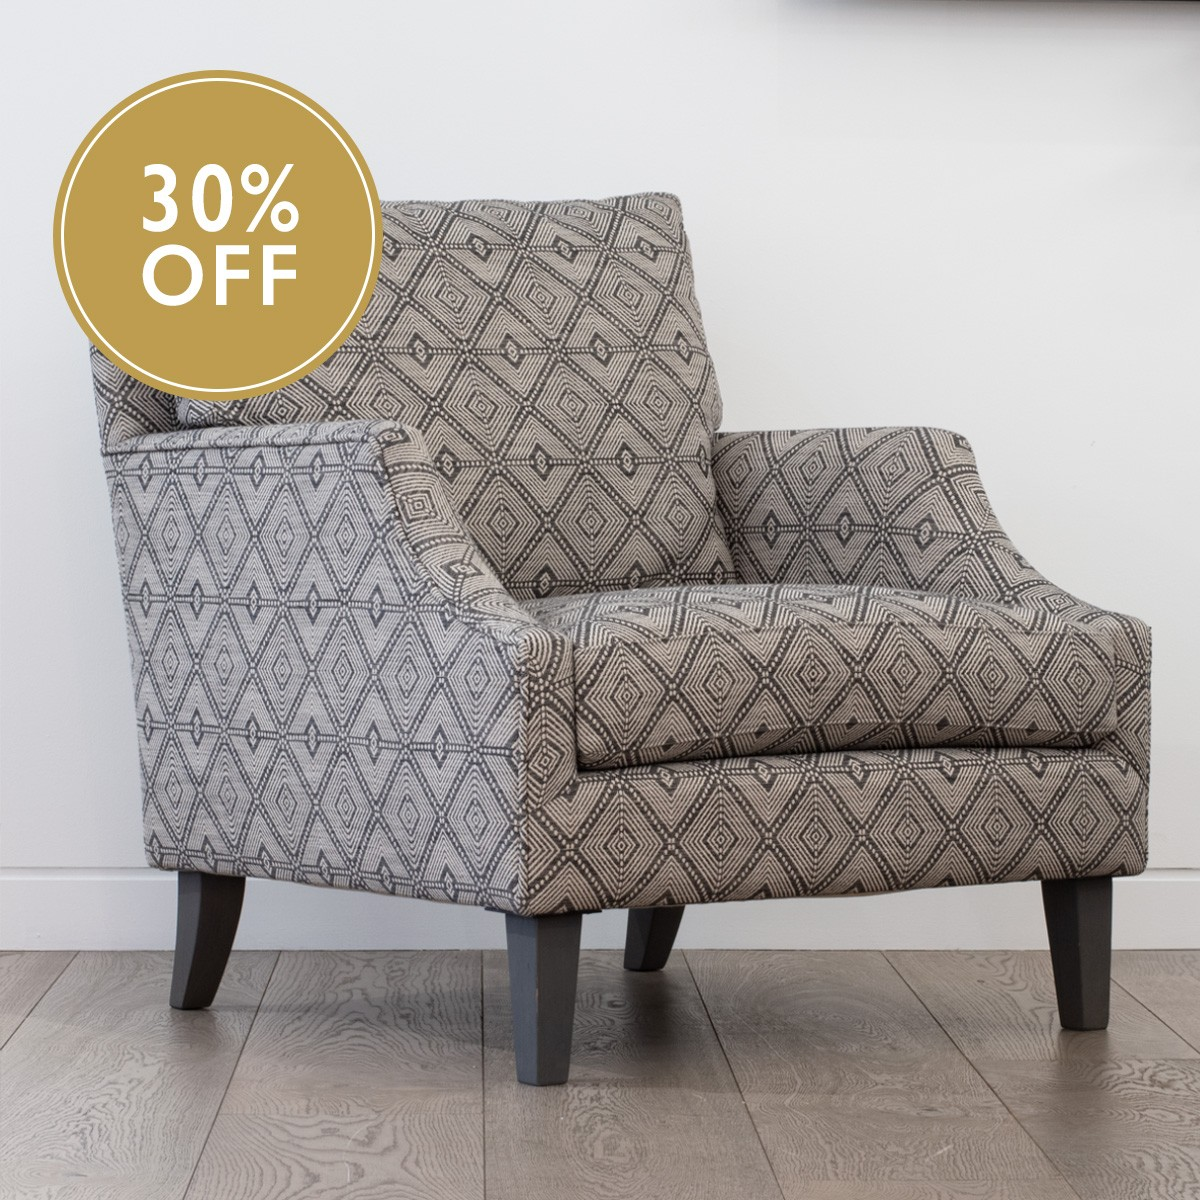 Dan's Comfy Chair in Kravet Design - Geometric